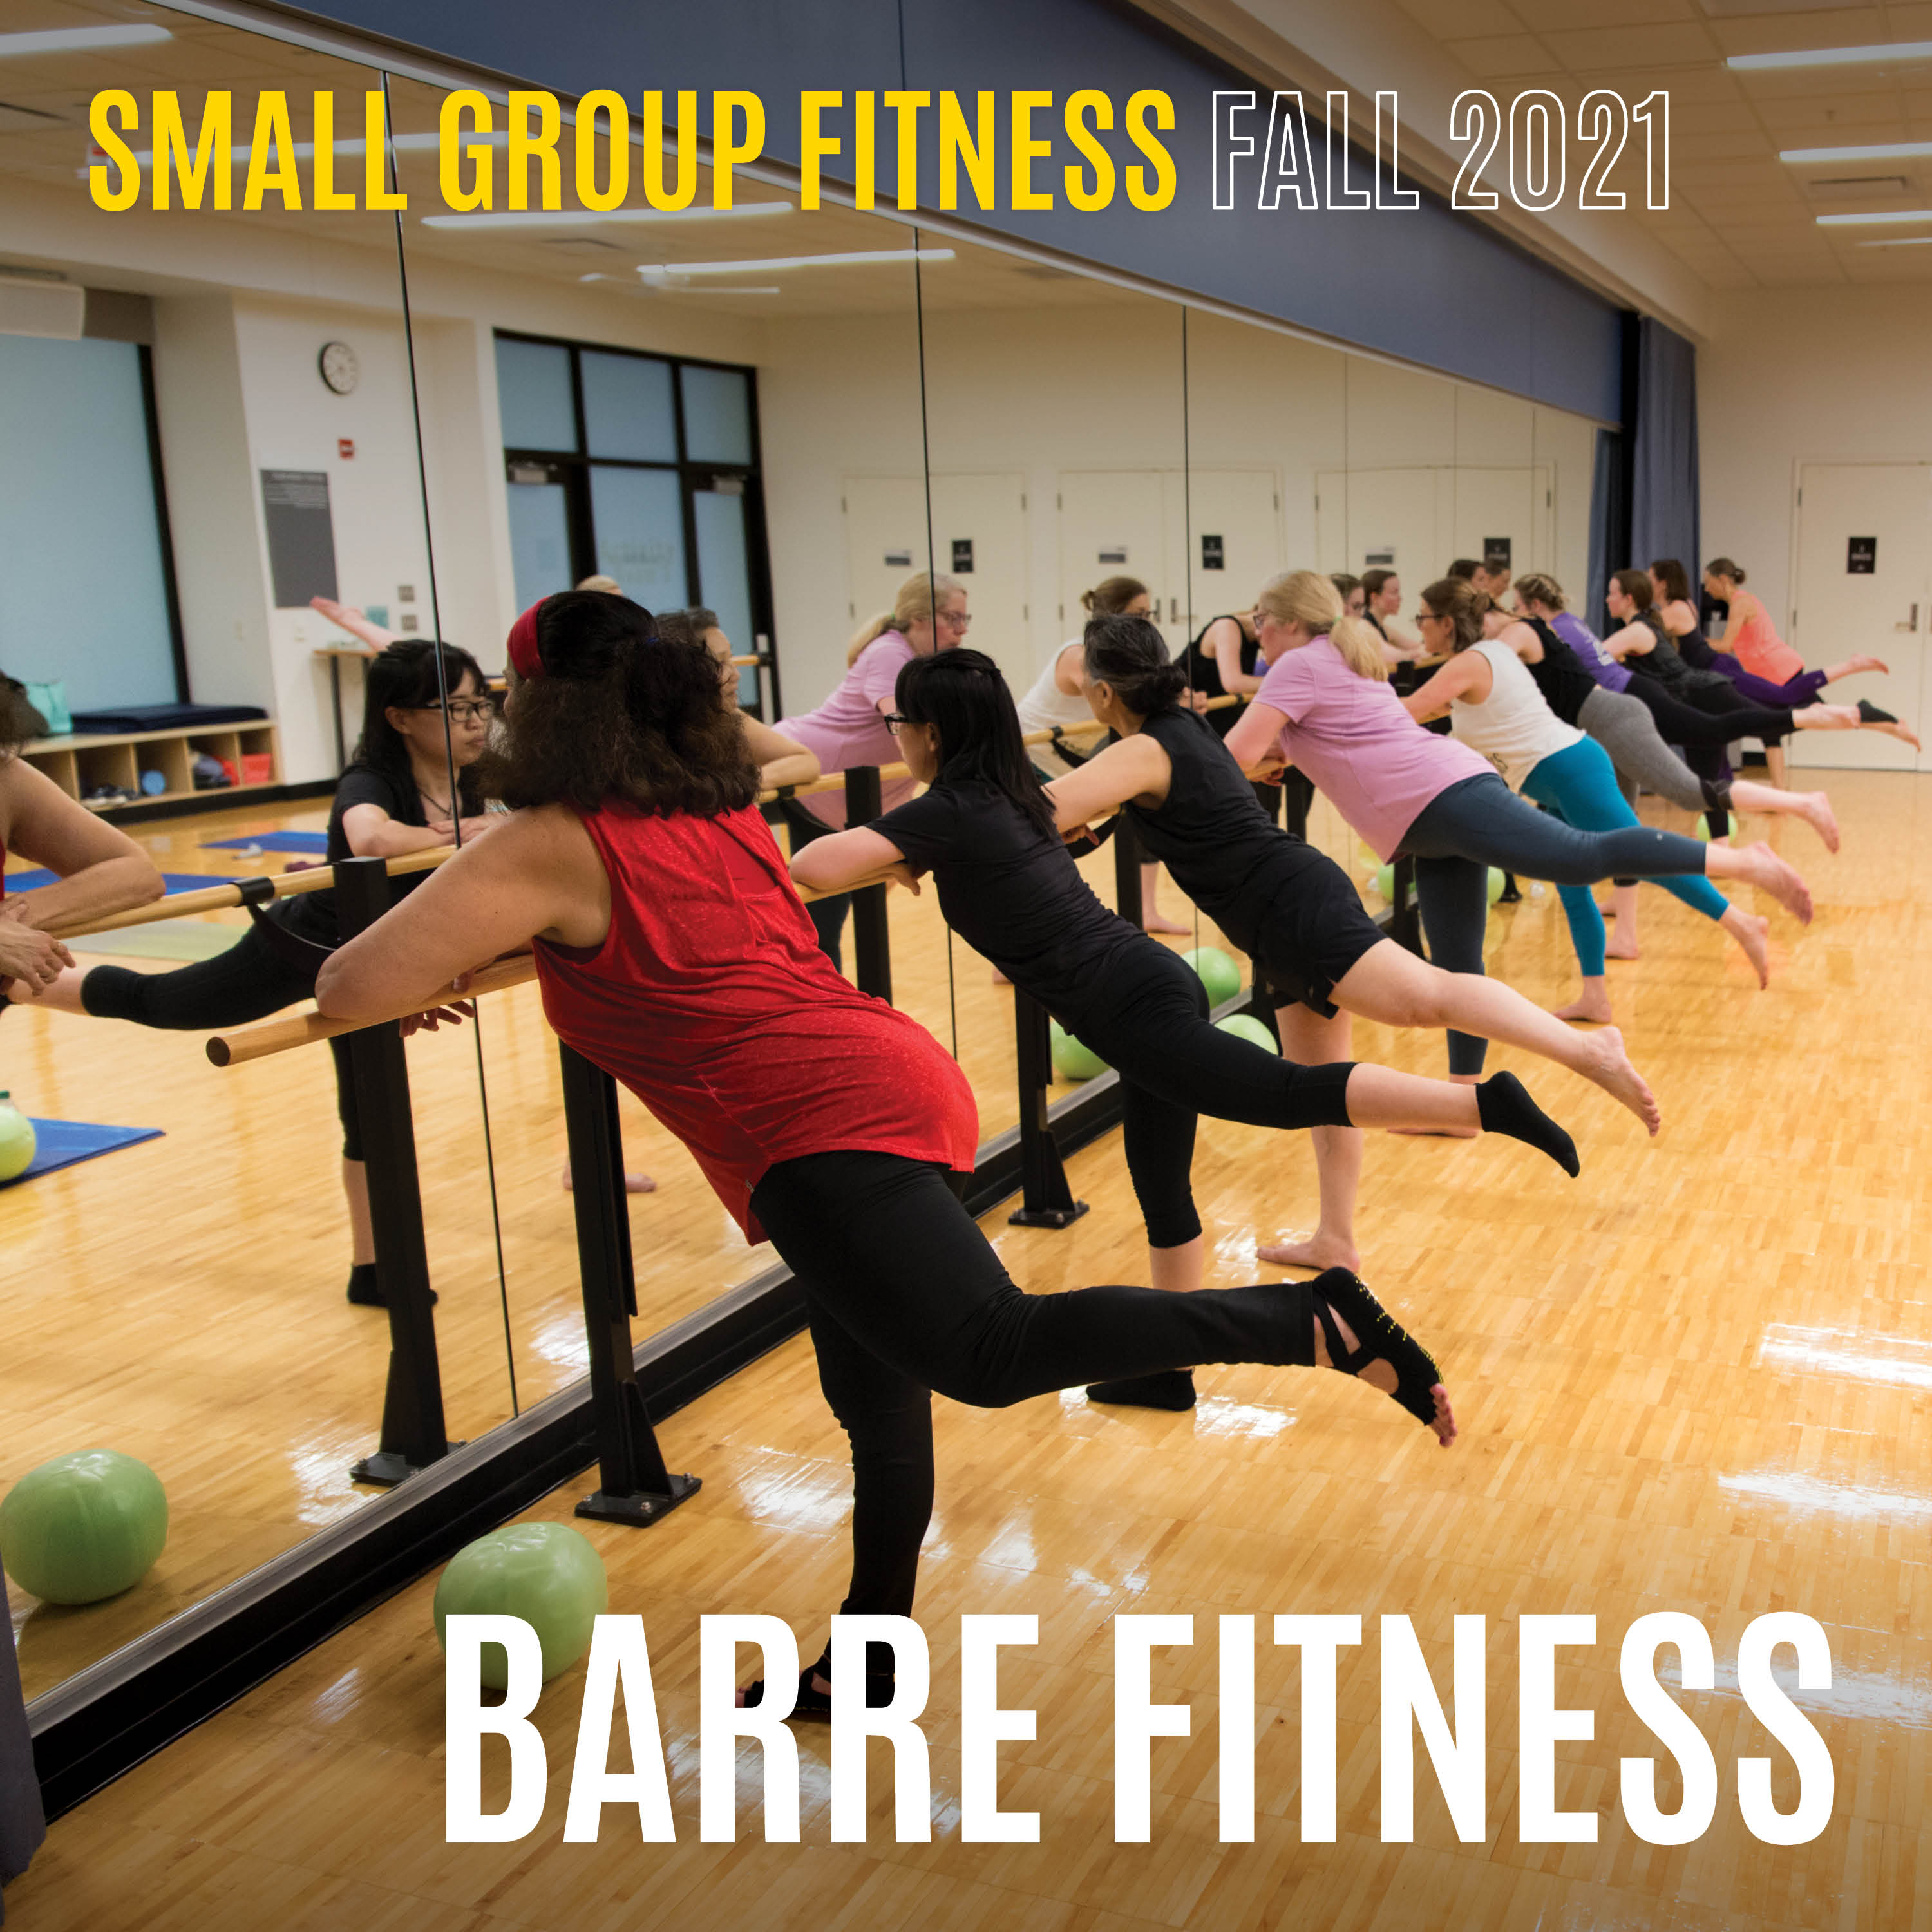 Small group training Fall 2021 Barre Fitness